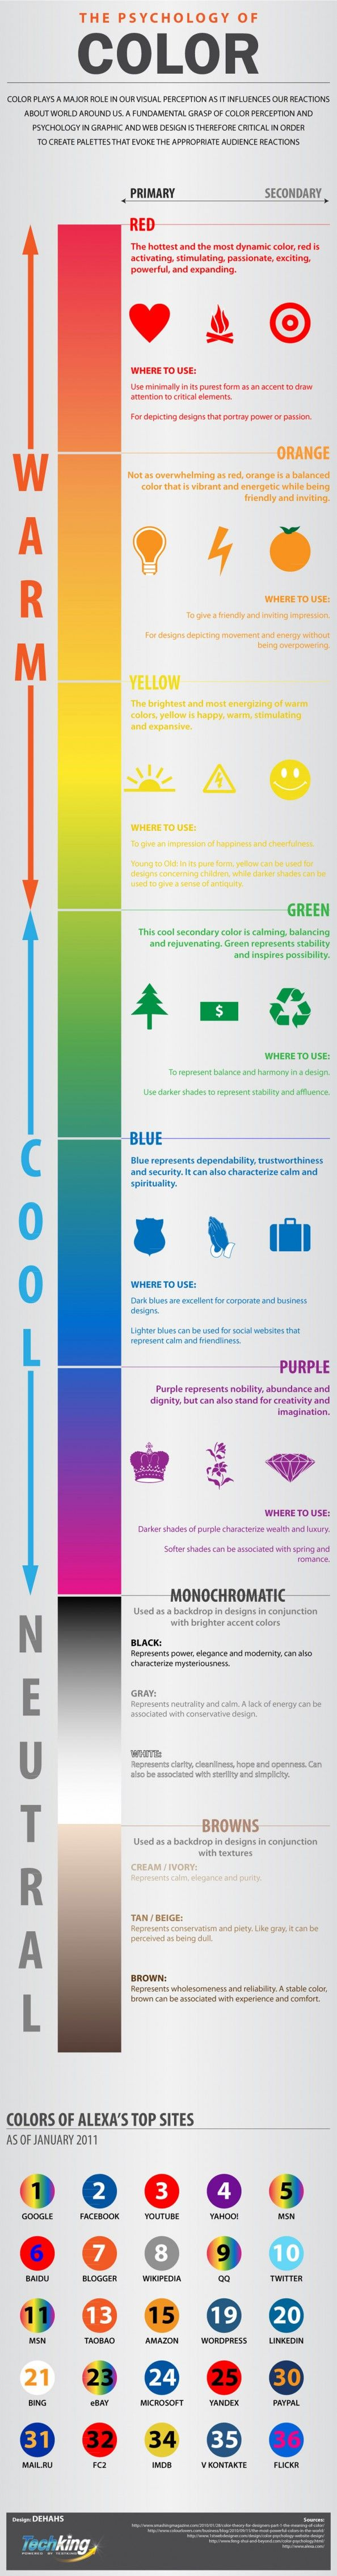 98 best color images on pinterest things organized neatly the the psycology of color infographic design by shahed syed color plays a major role nvjuhfo Gallery